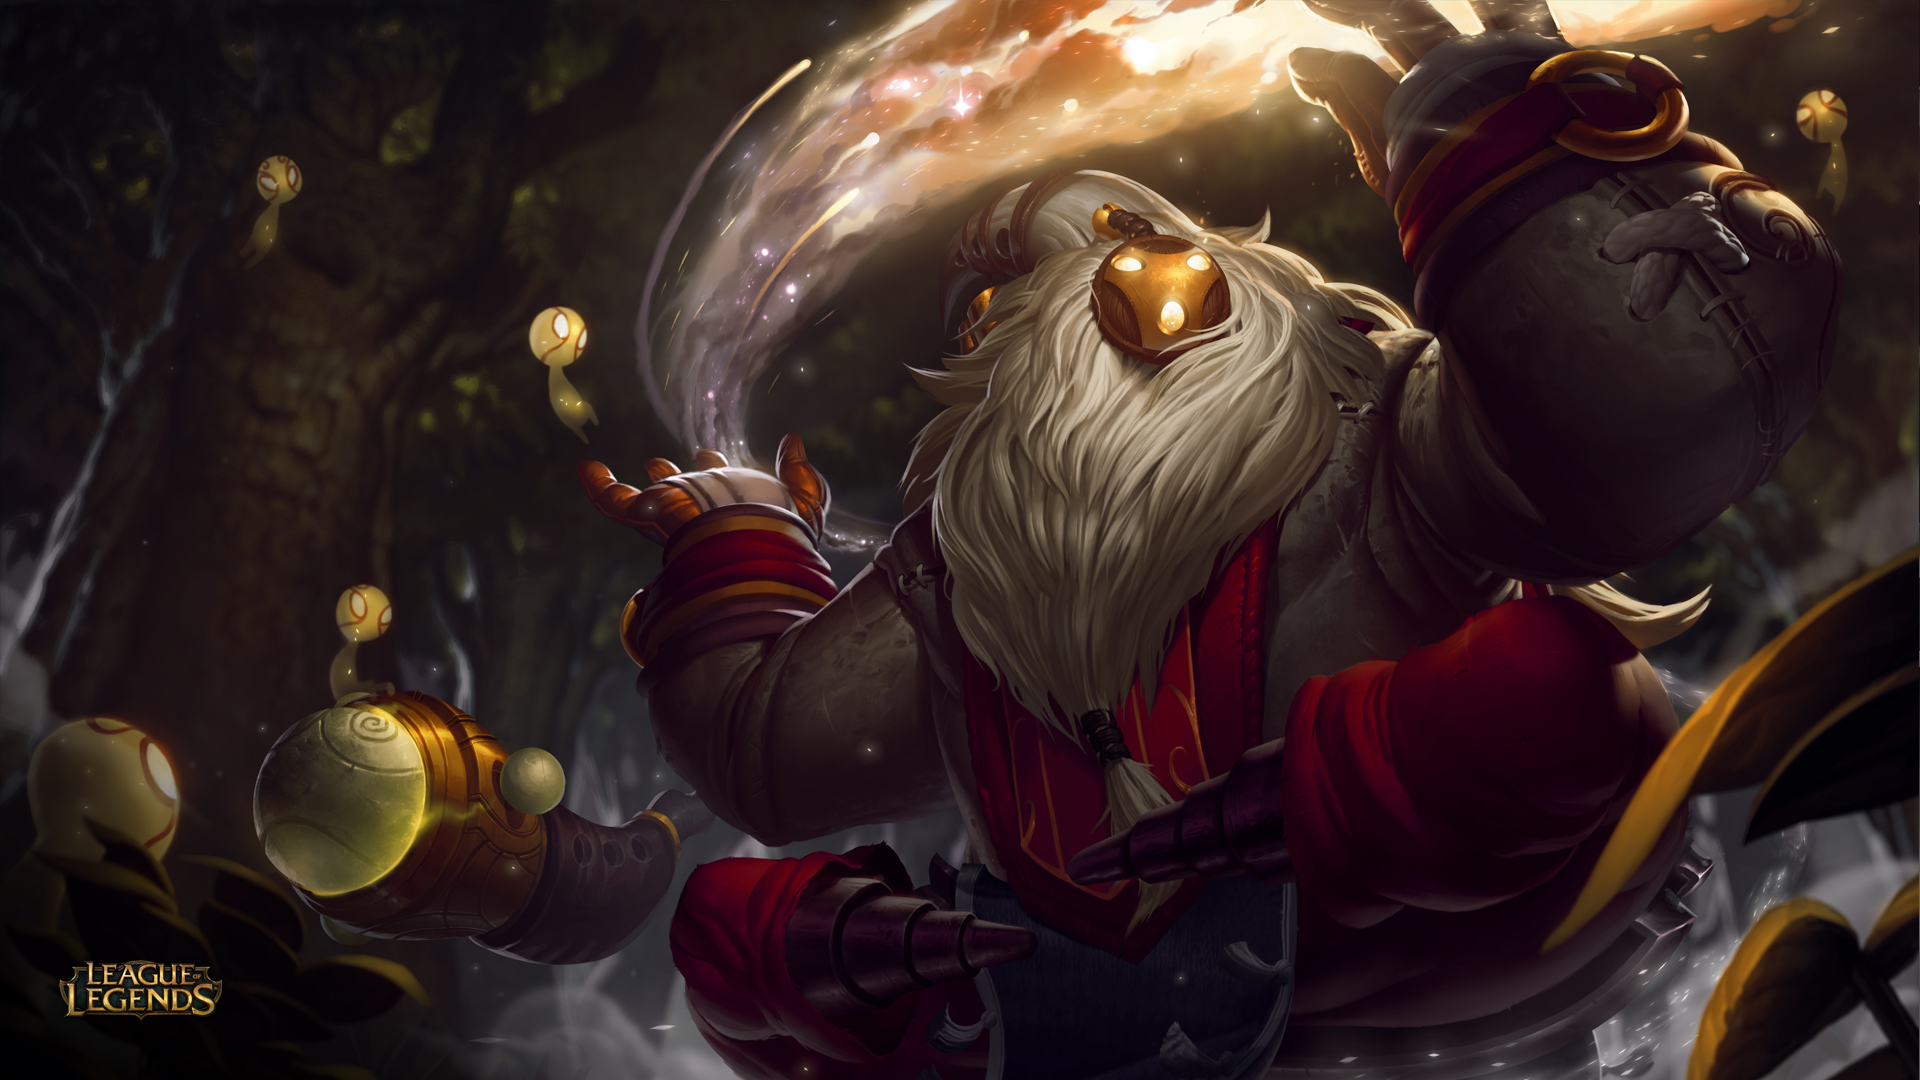 league of legends 8.1 patch notes